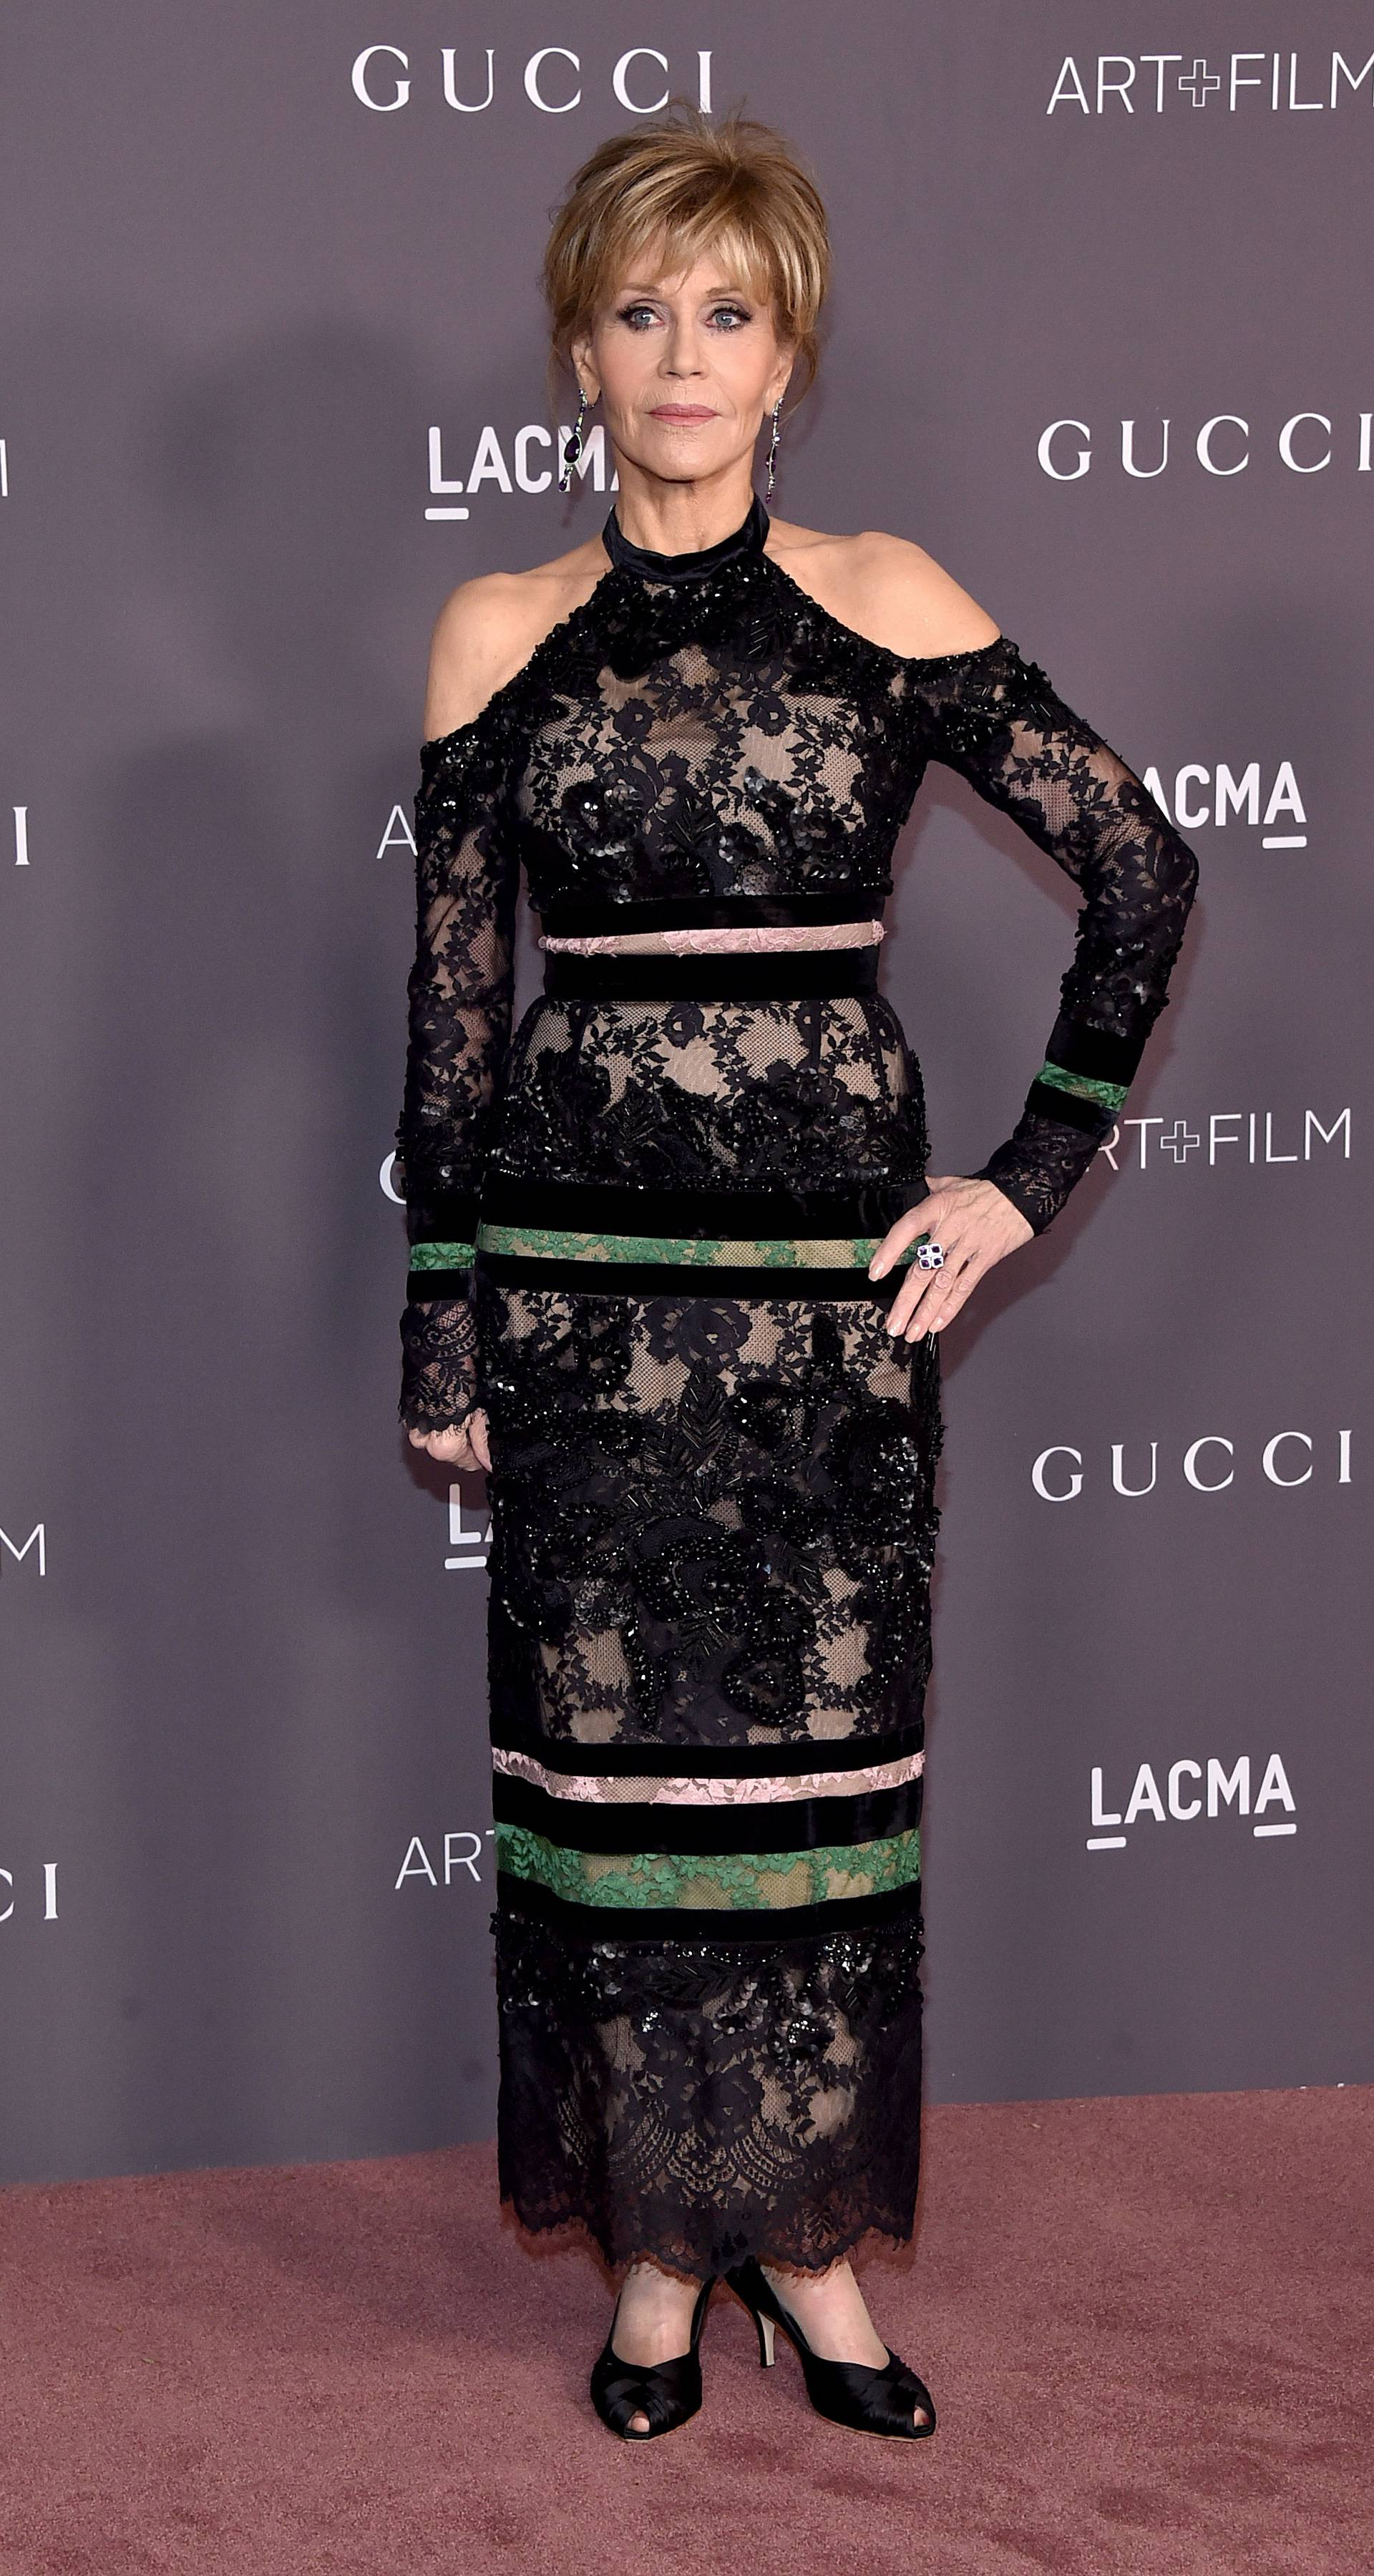 2017 LACMA Art + Film Gala - Los Angeles